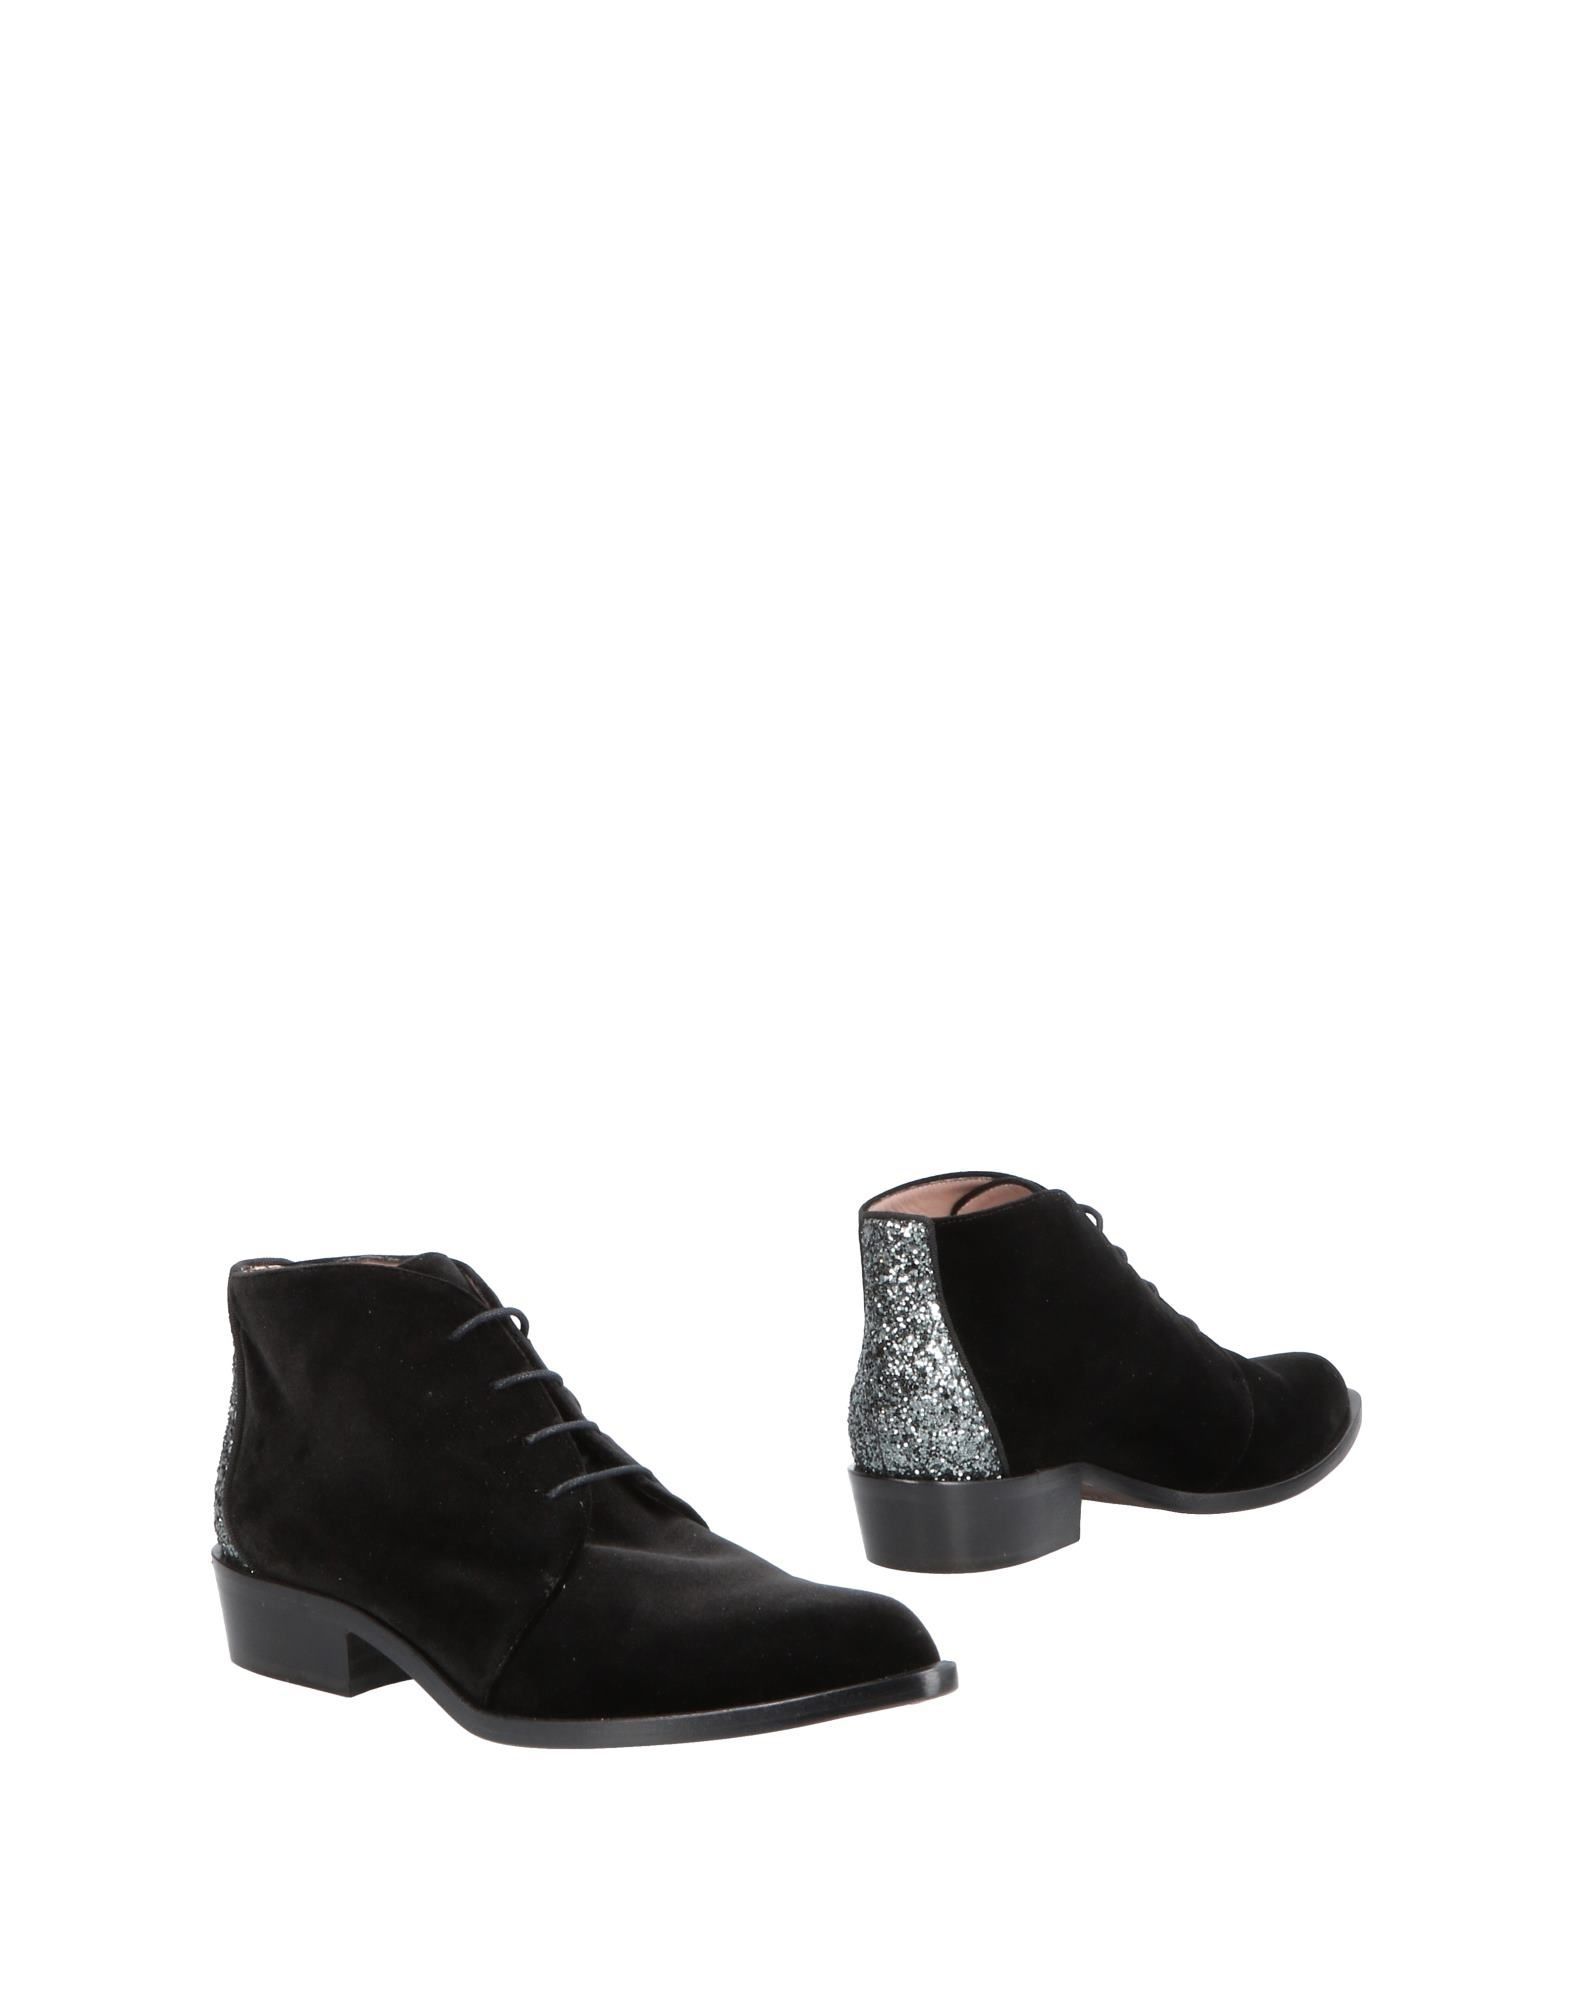 GIANNA MELIANI Ankle Boot in Black